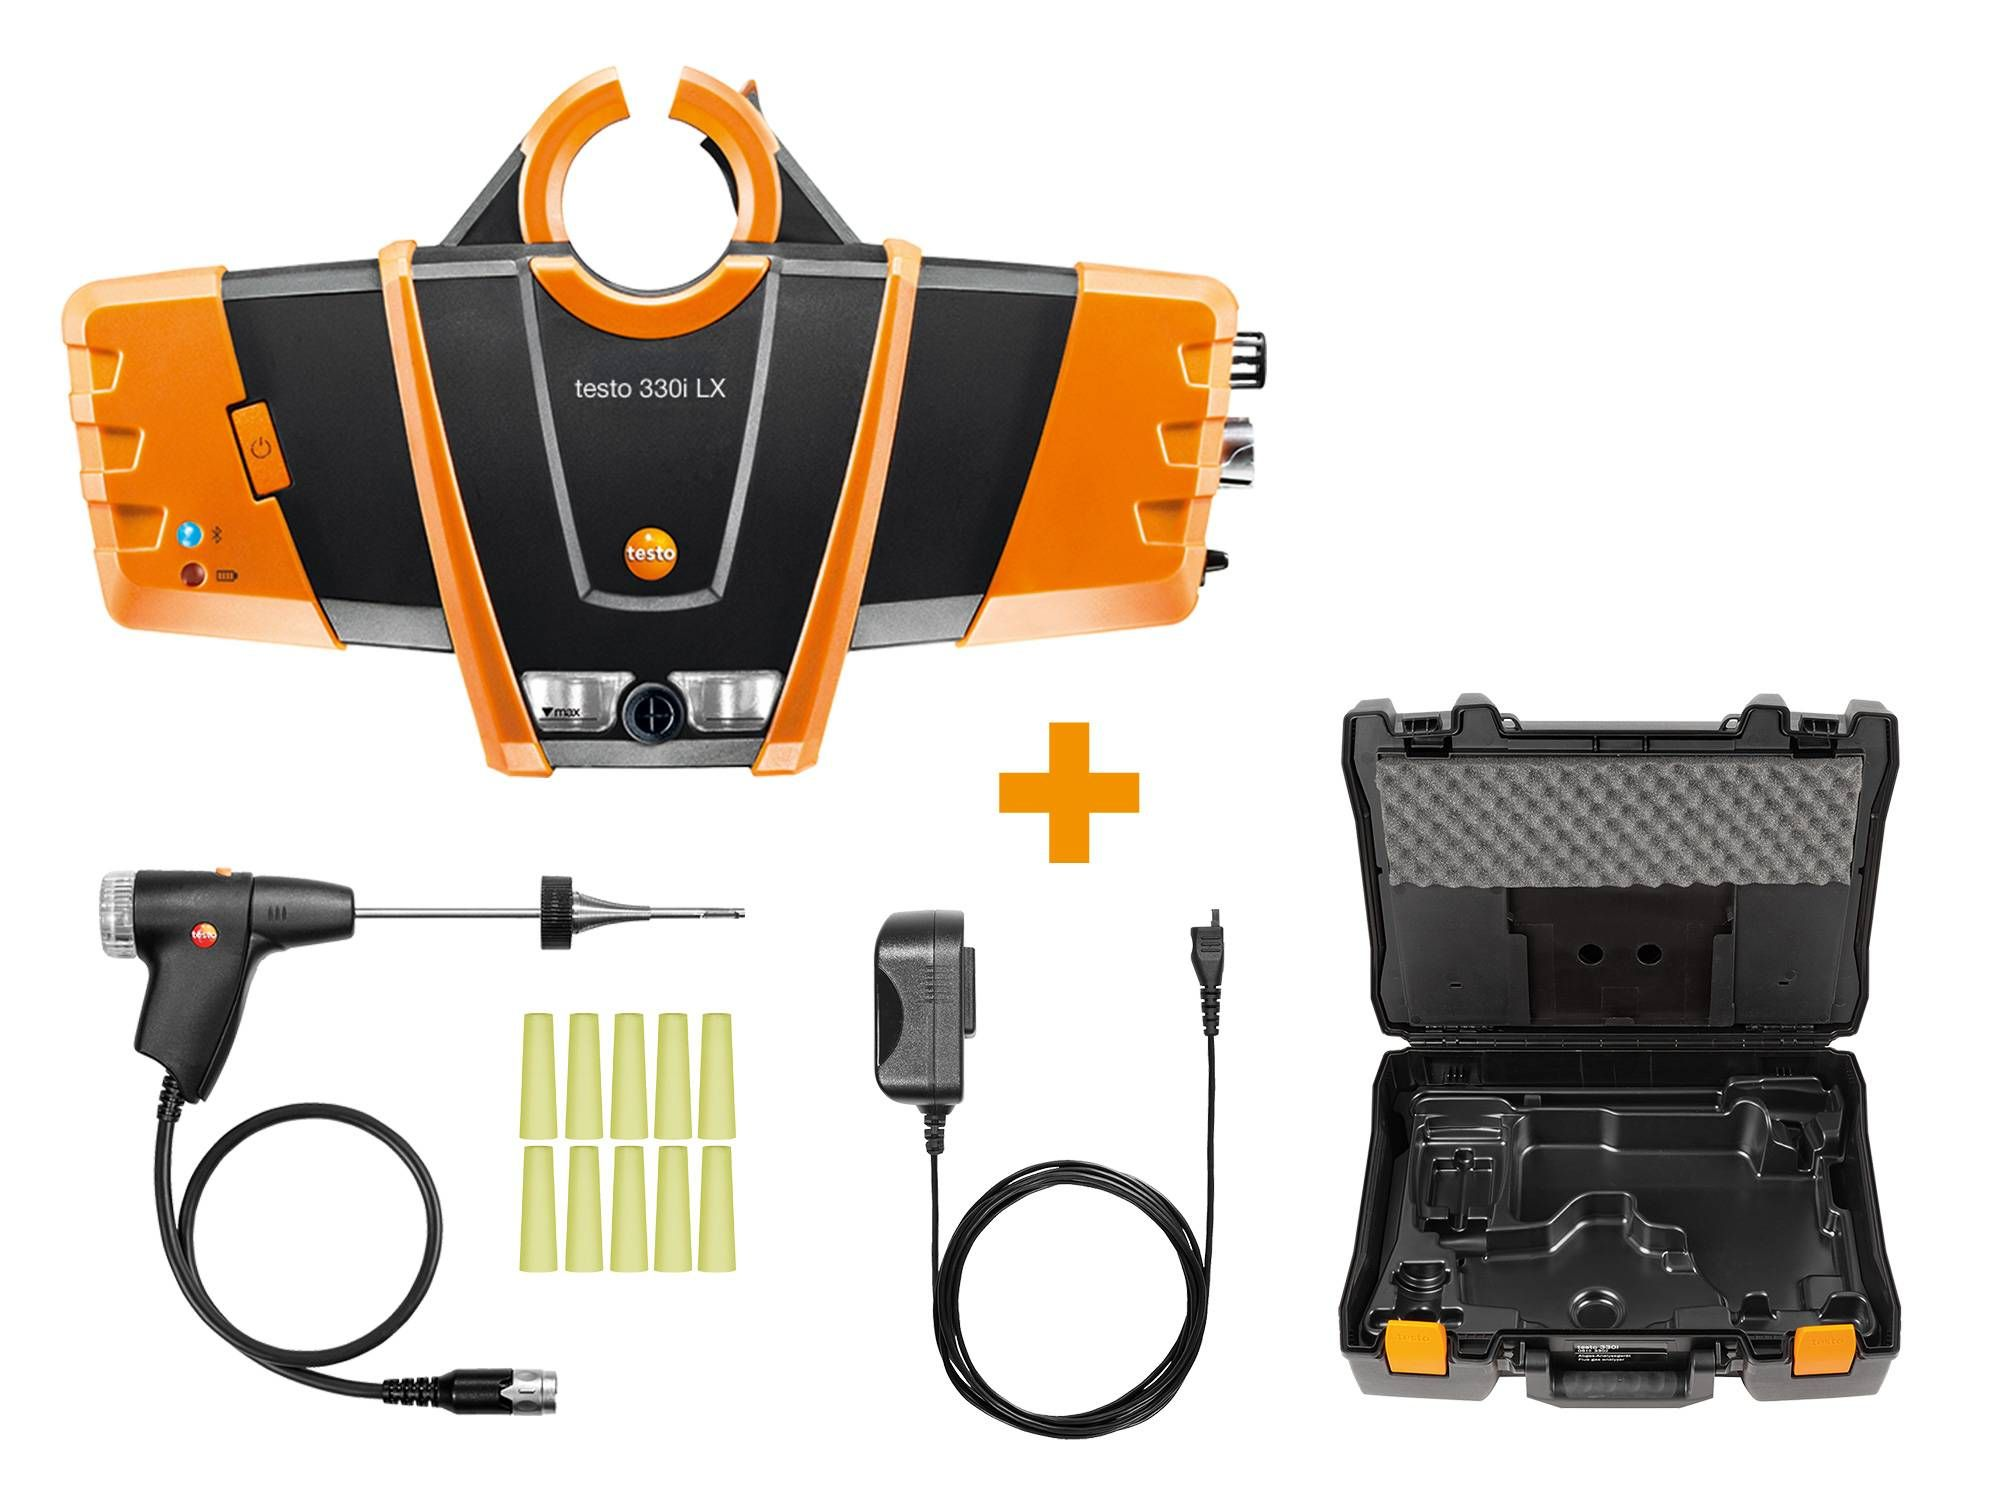 testo 330i LX essential kit